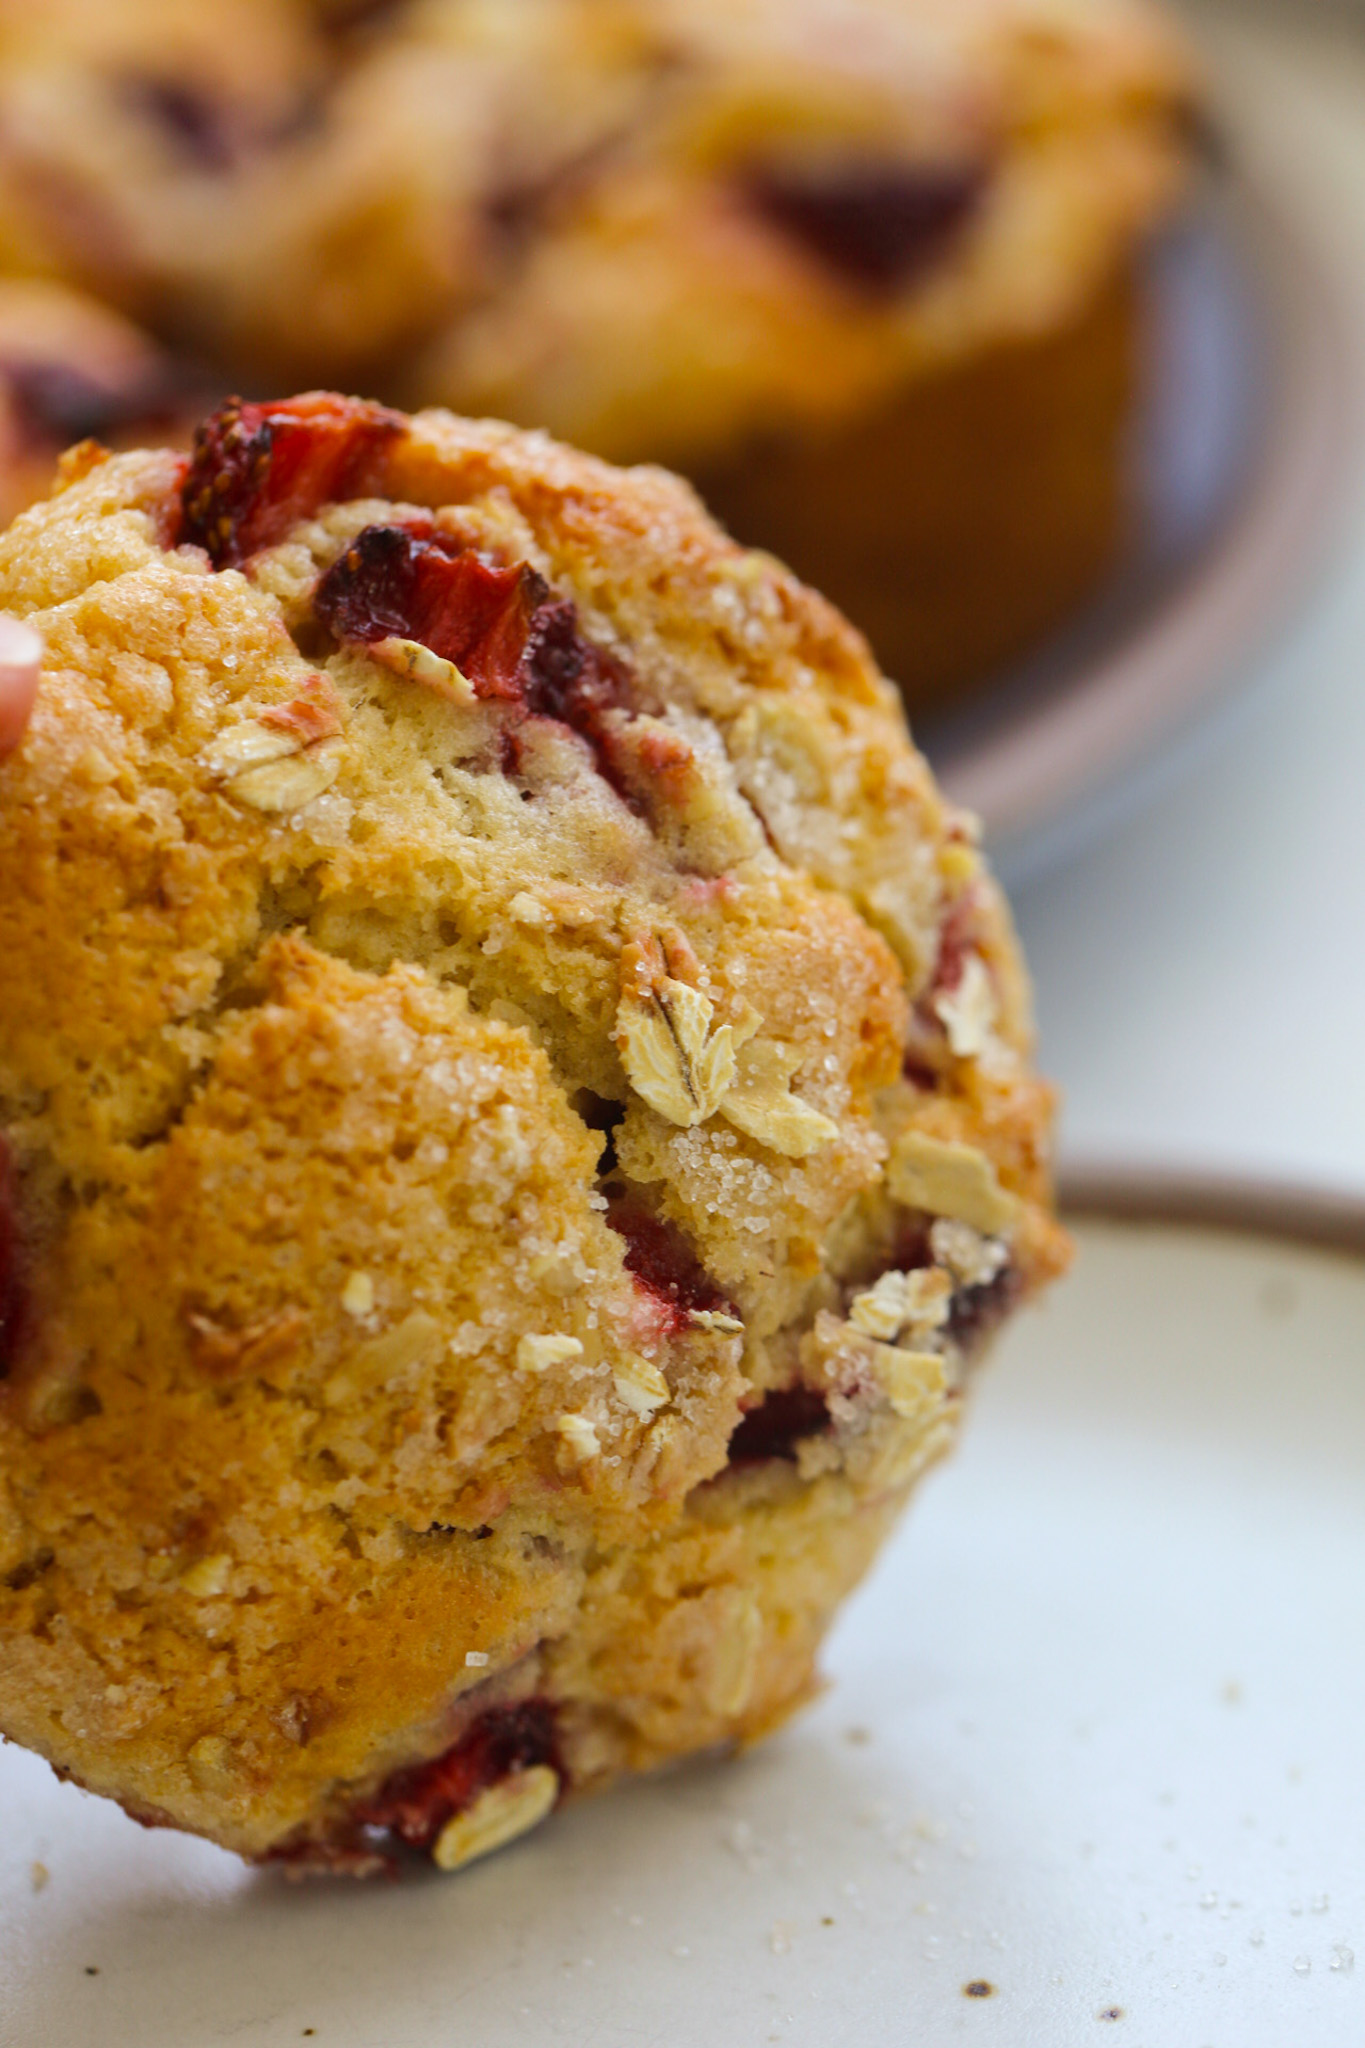 Muffin top with berries